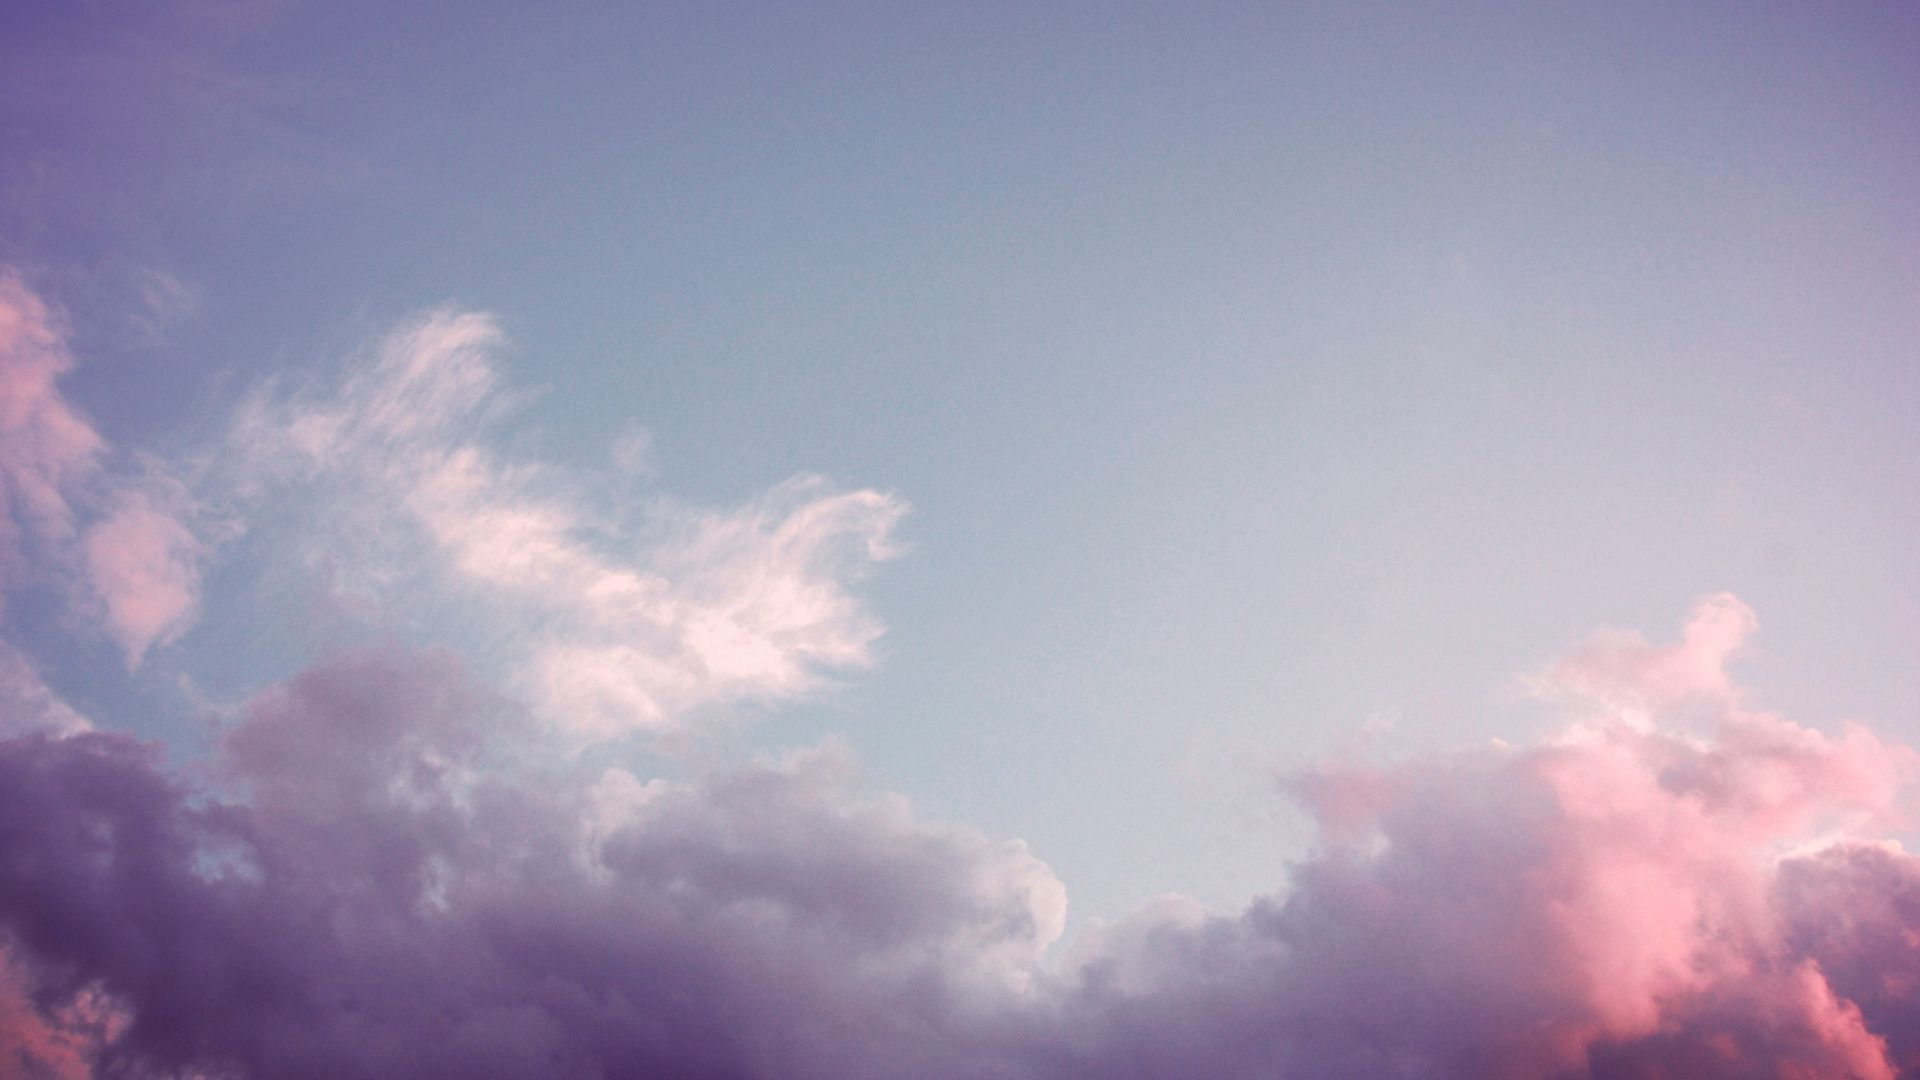 Sky Clouds Wallpaper Jpg 1 920 1 080 Pixels Aesthetic Desktop